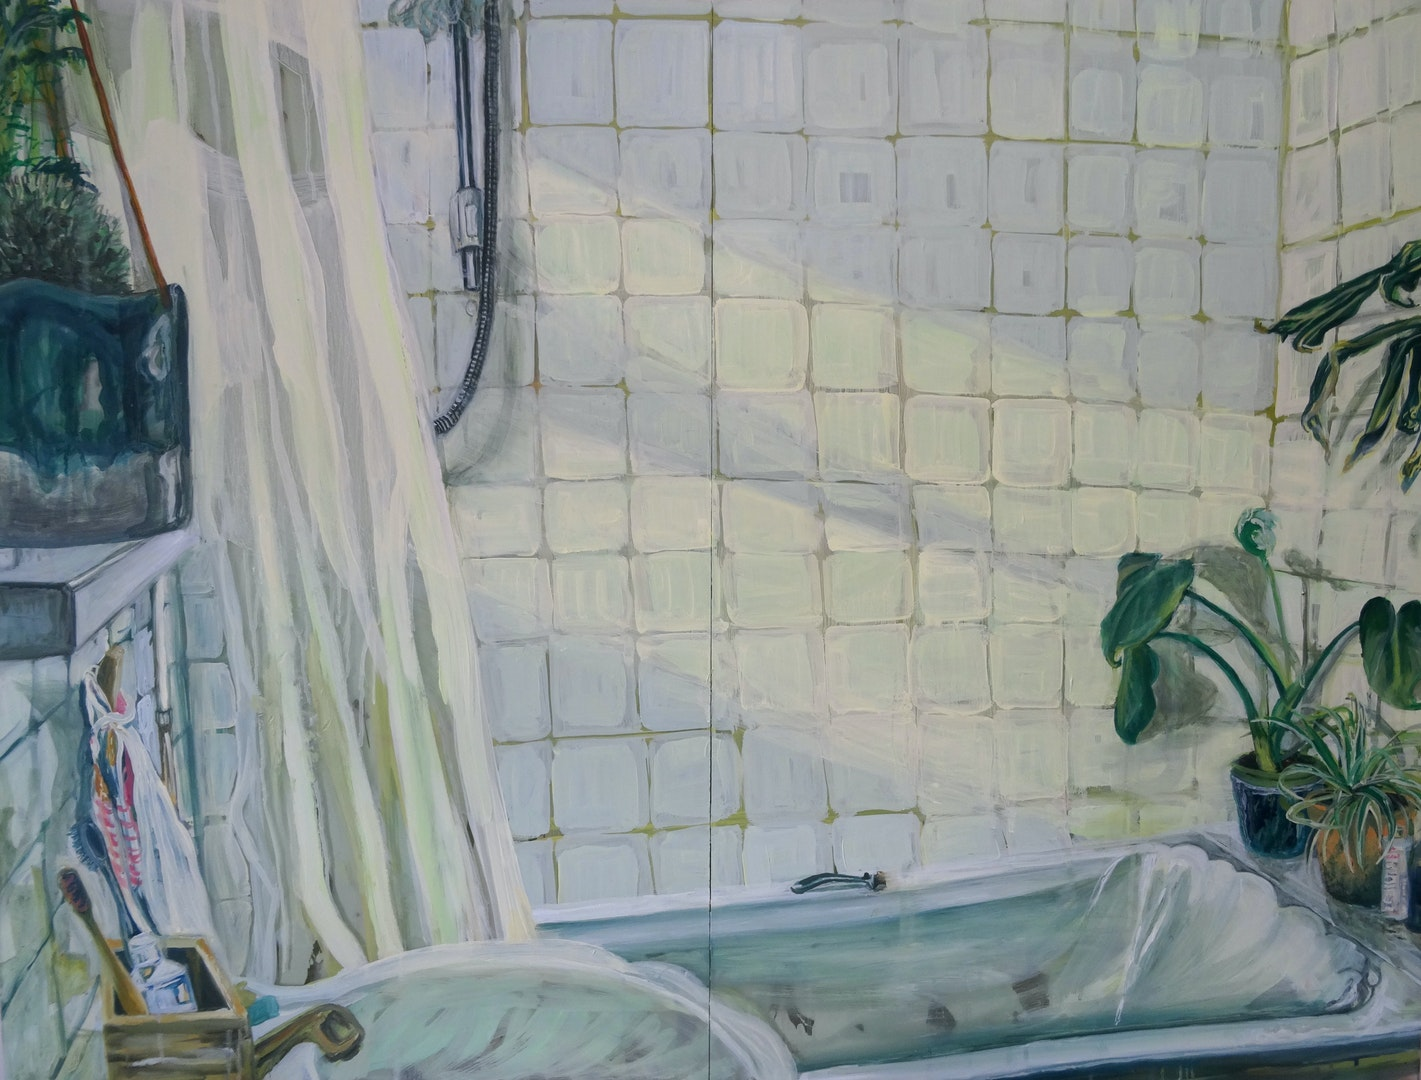 'White tiles', Gabrielle J Moore, Oil on clear perspex, 80 x 106 cm